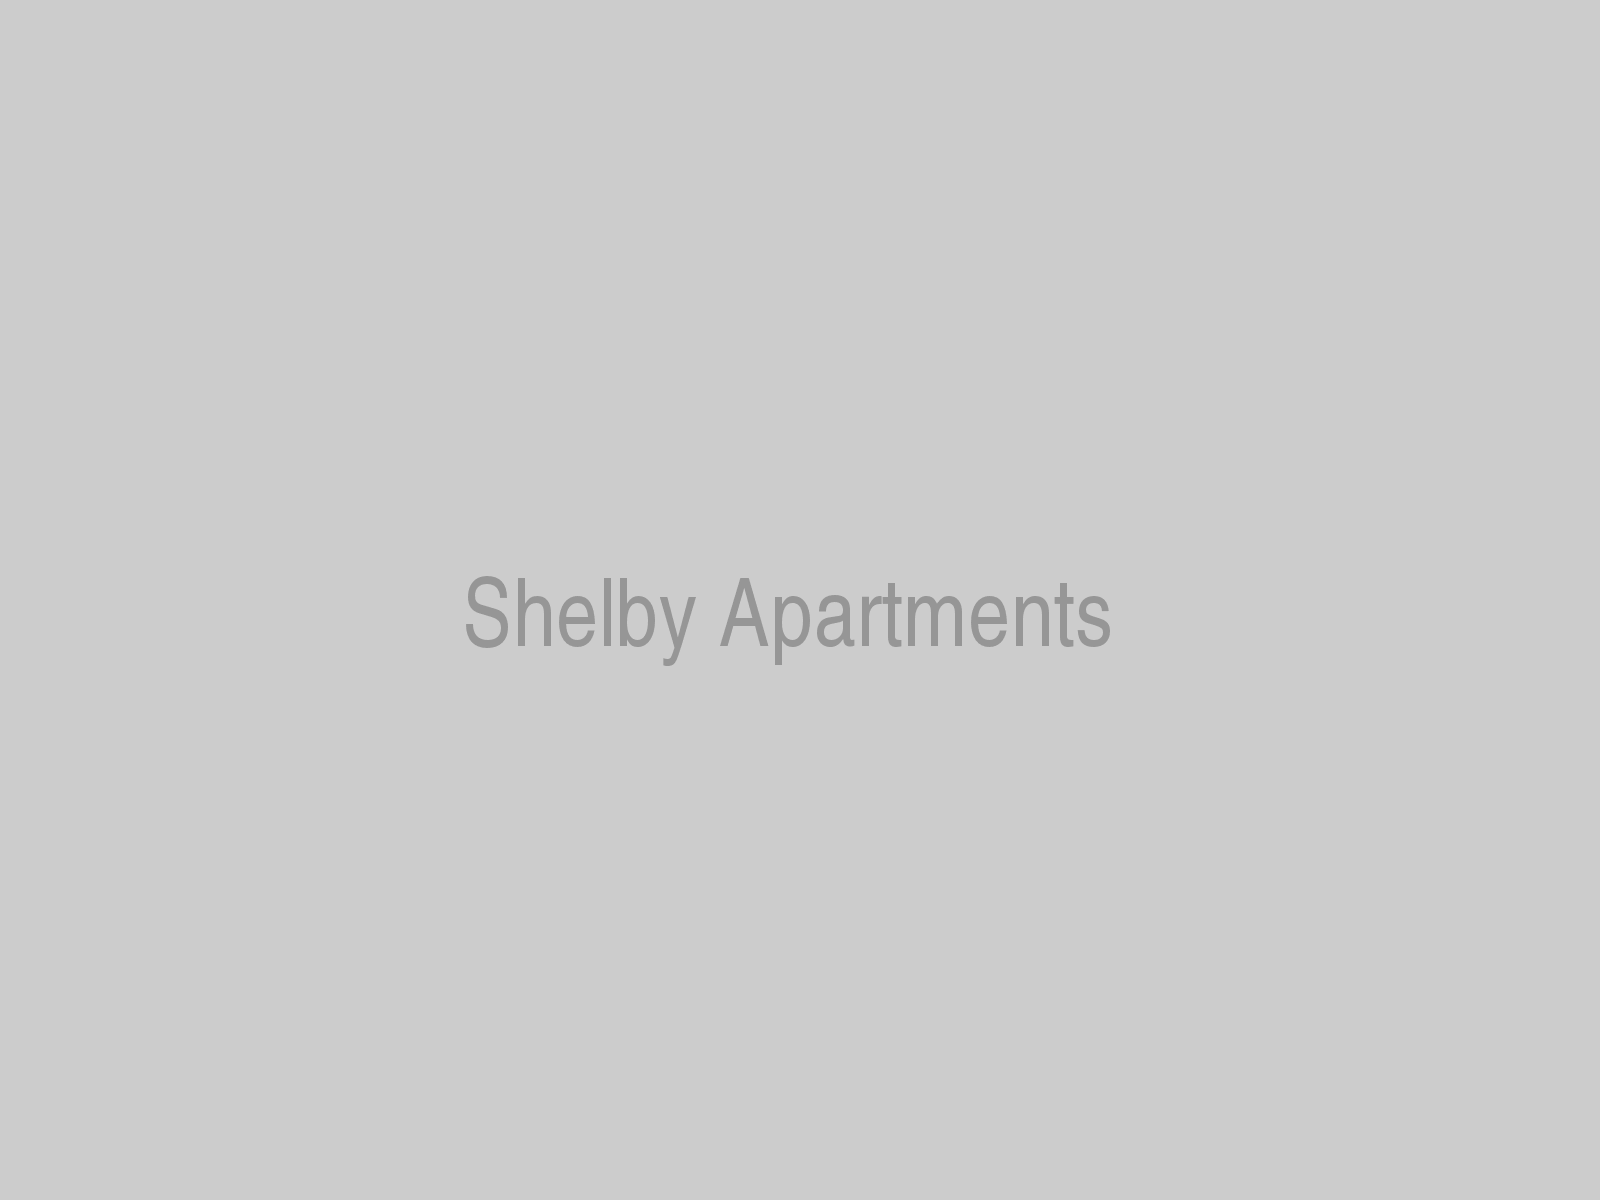 Shelby Apartments